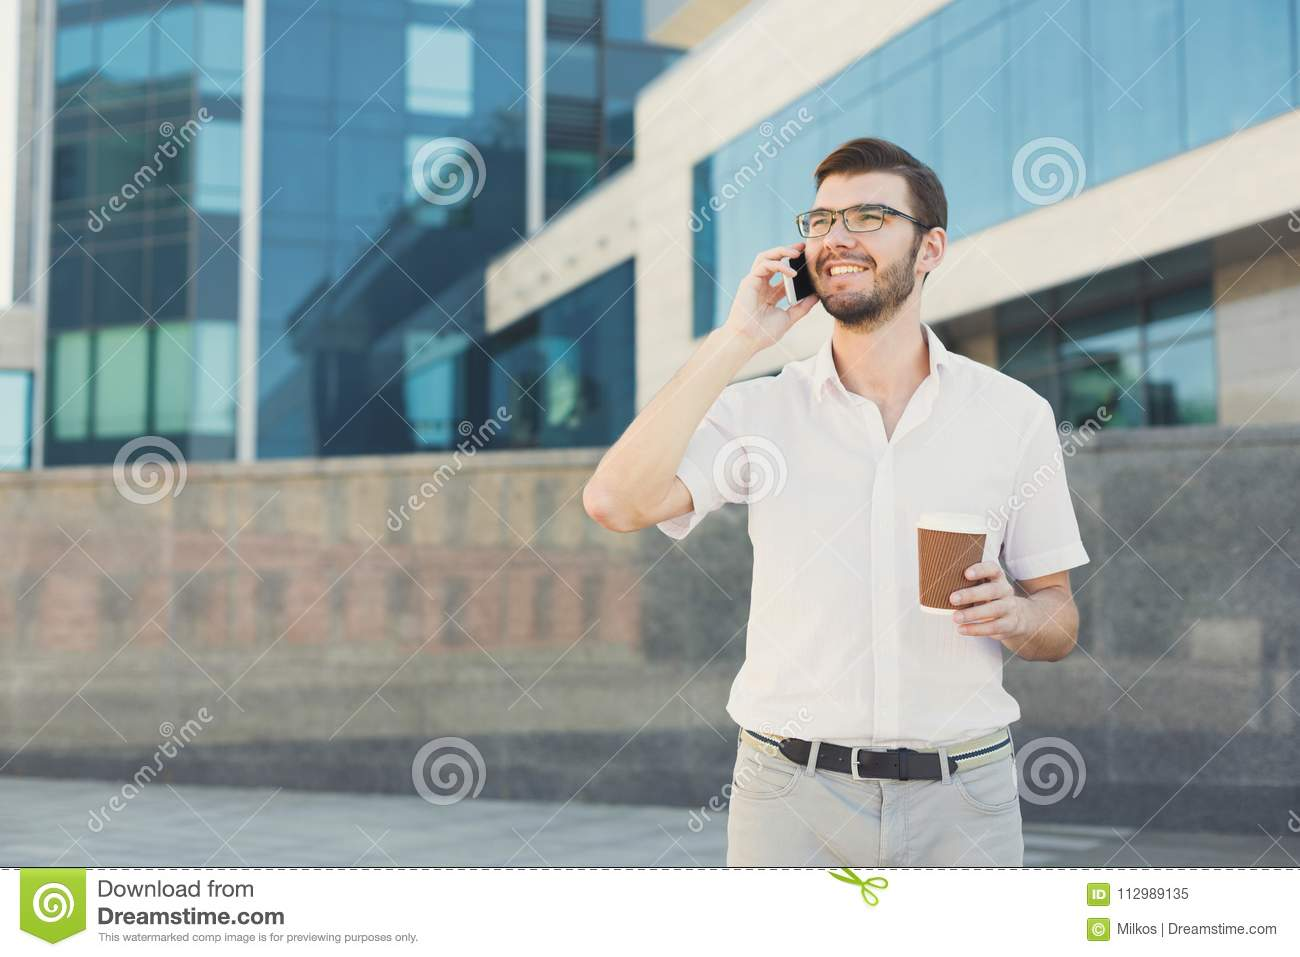 Young smiling businessman making a call outdoors